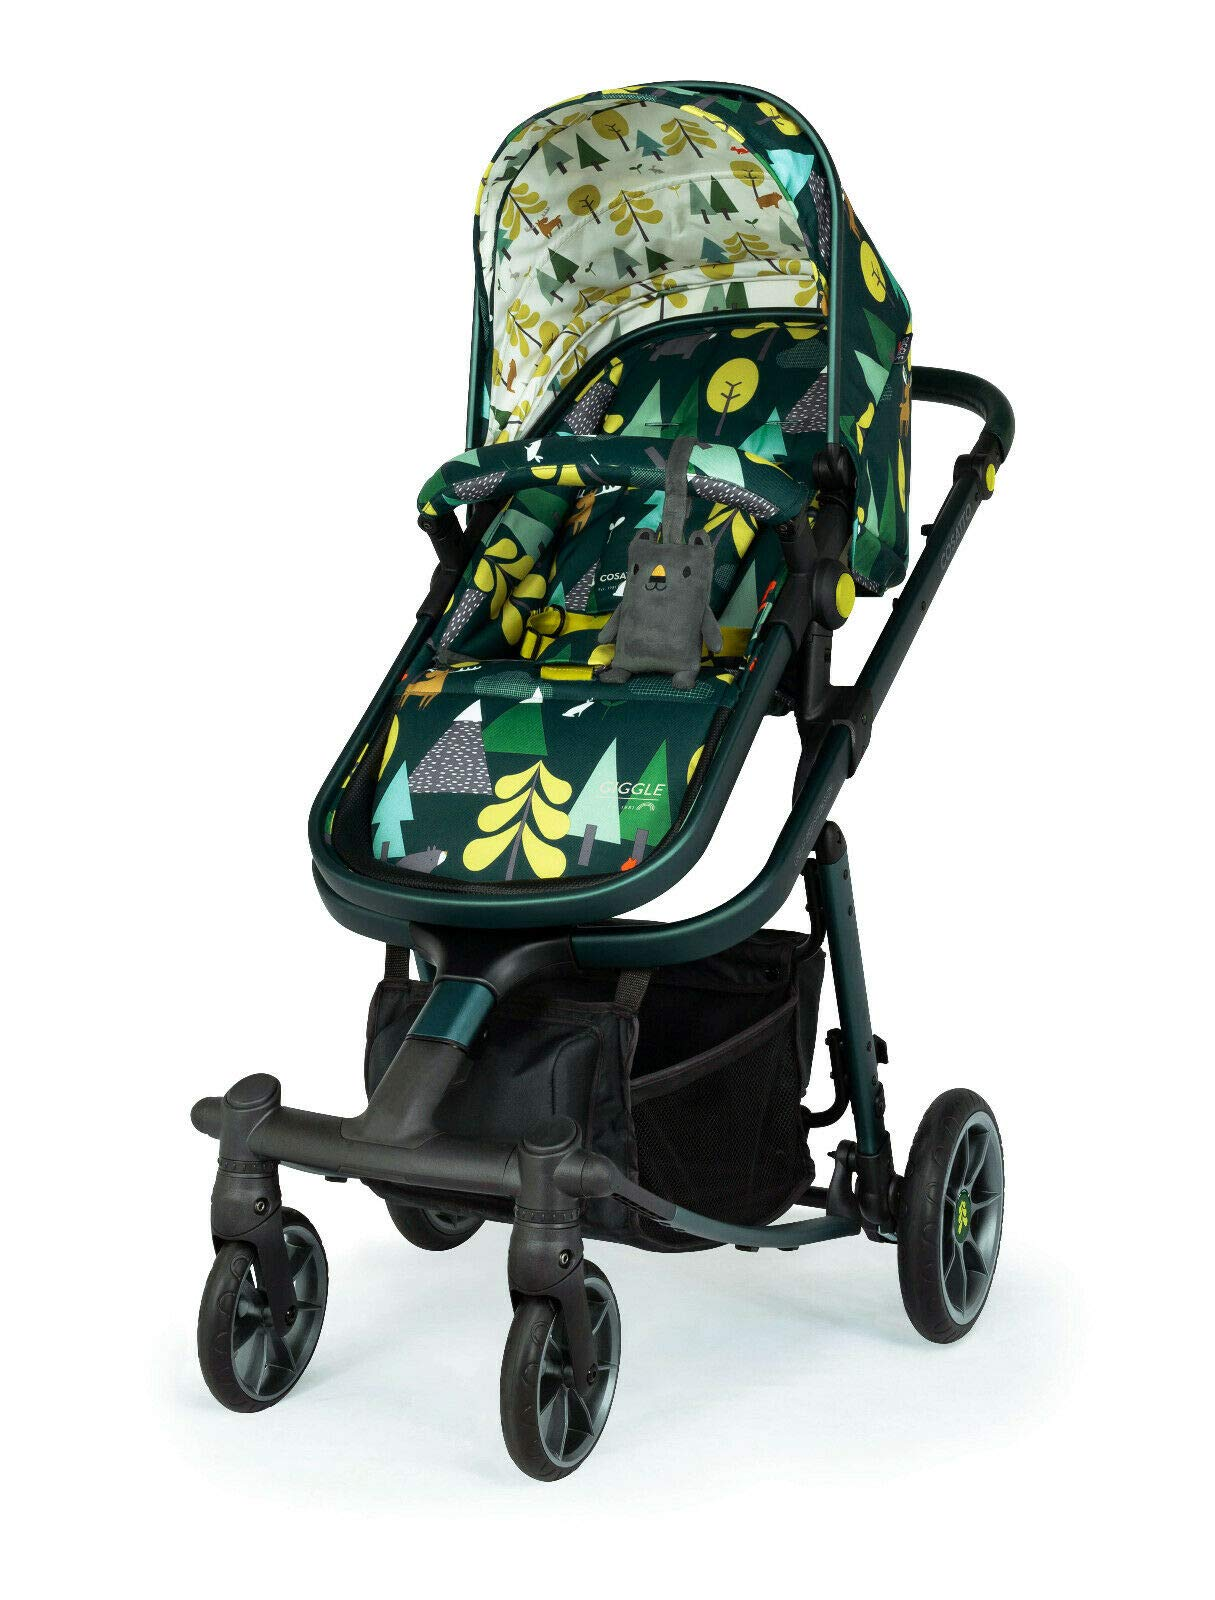 Cosatto Giggle Quad Pram & Pushchair Into The Wild Cosatto Enhanced performance. unique tyre material and all-round premium suspension give air-soft feel. Comfy all-round. spacious carrycot for growing babies.  washable liner. reversible reclining seat. Ultimate buy. tested up to a mighty 20kg for even longer use. big 3.5kg capacity basket for big shop 3